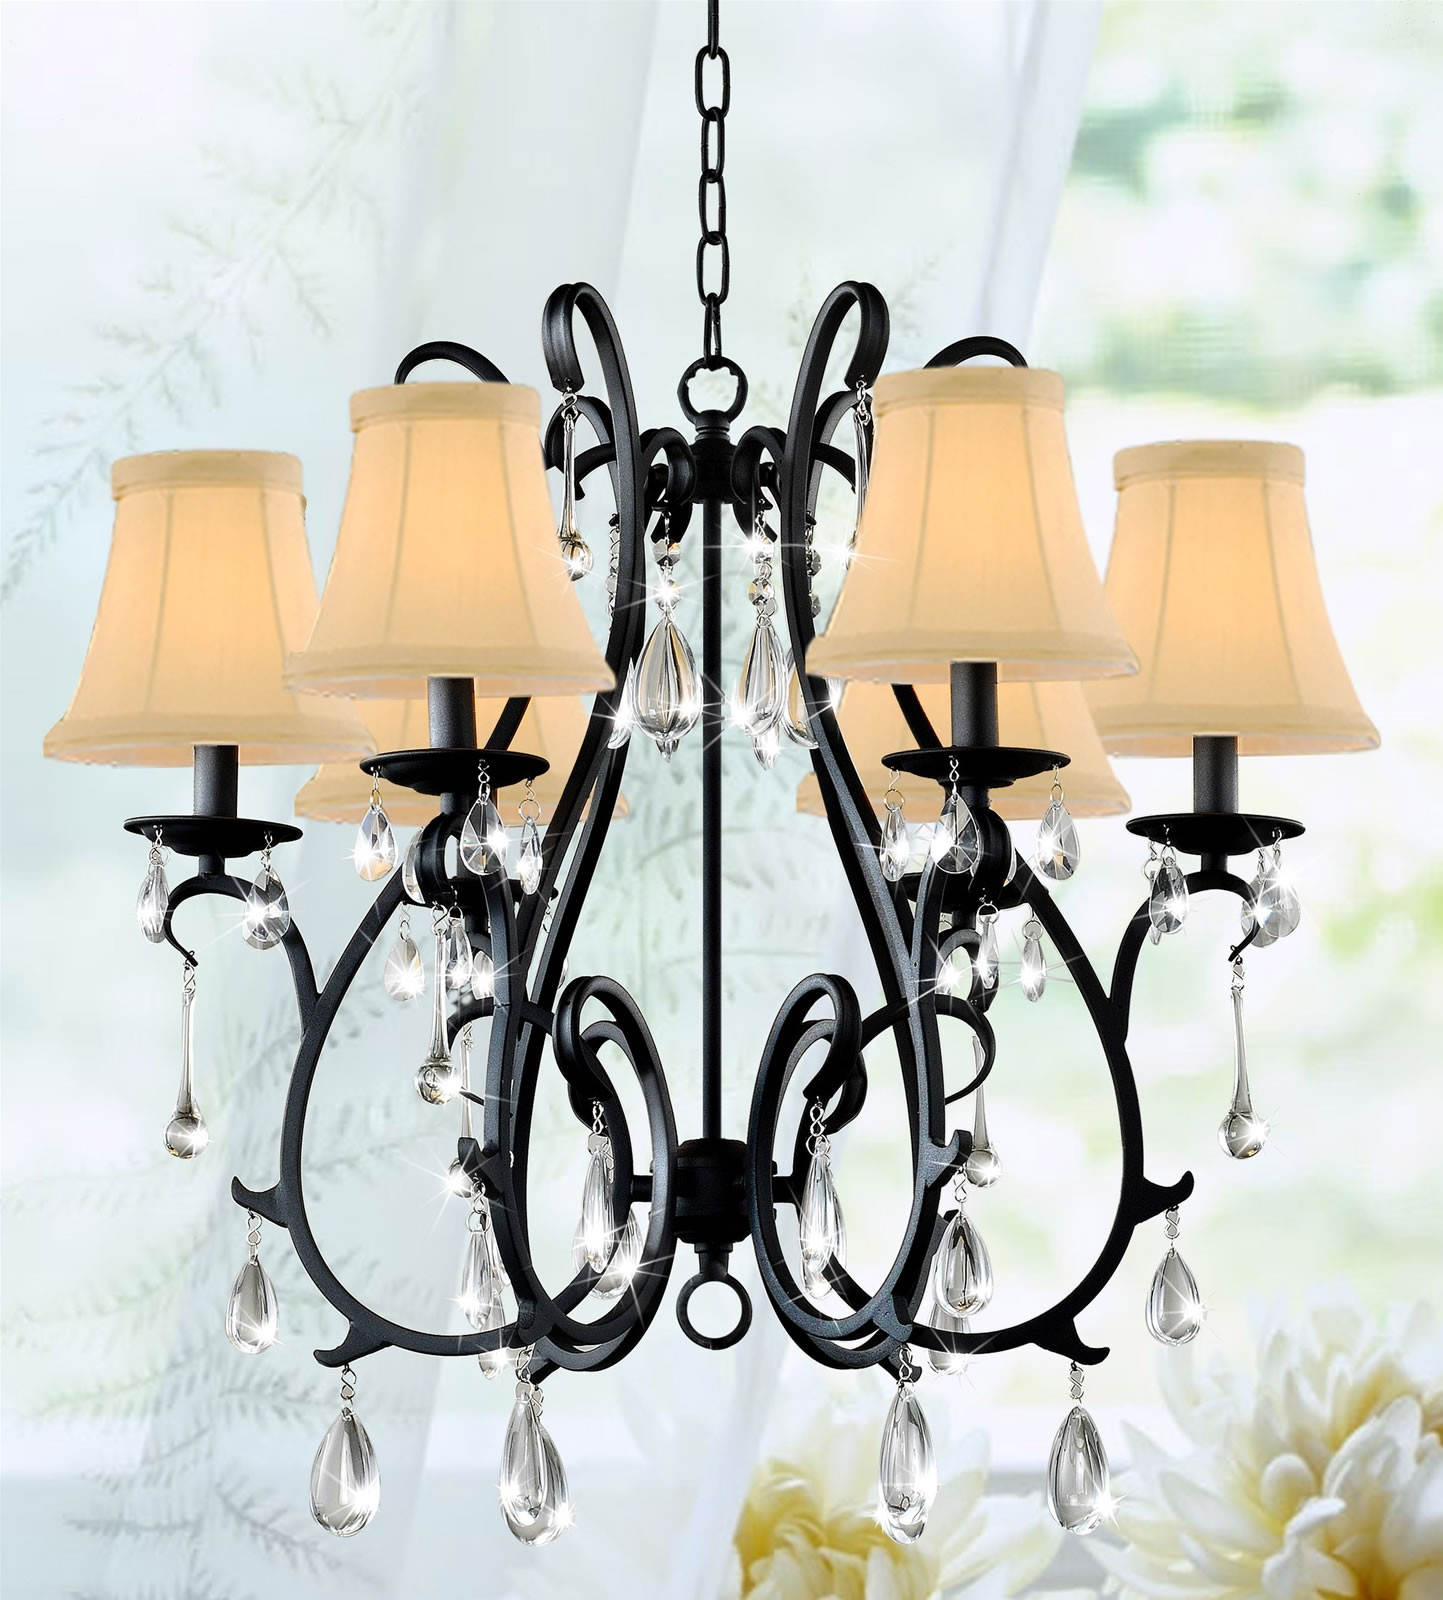 Mackenzie Traditional 6 Light Topped Shade S Shape Curved Iron Crystal Chandelier 24